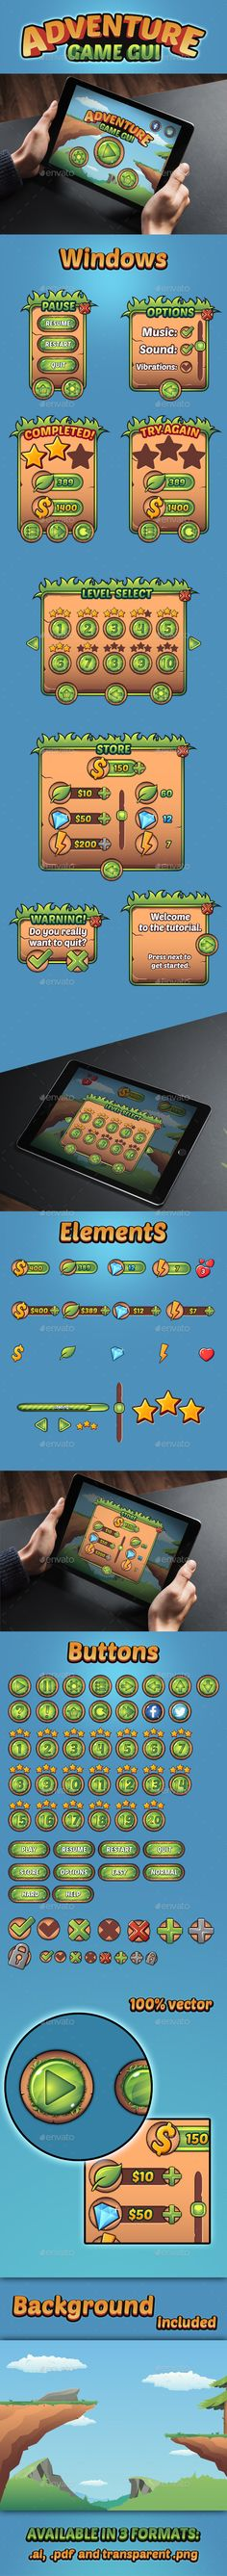 Adventure Game GUI - User Interfaces #Game #Assets | Download…